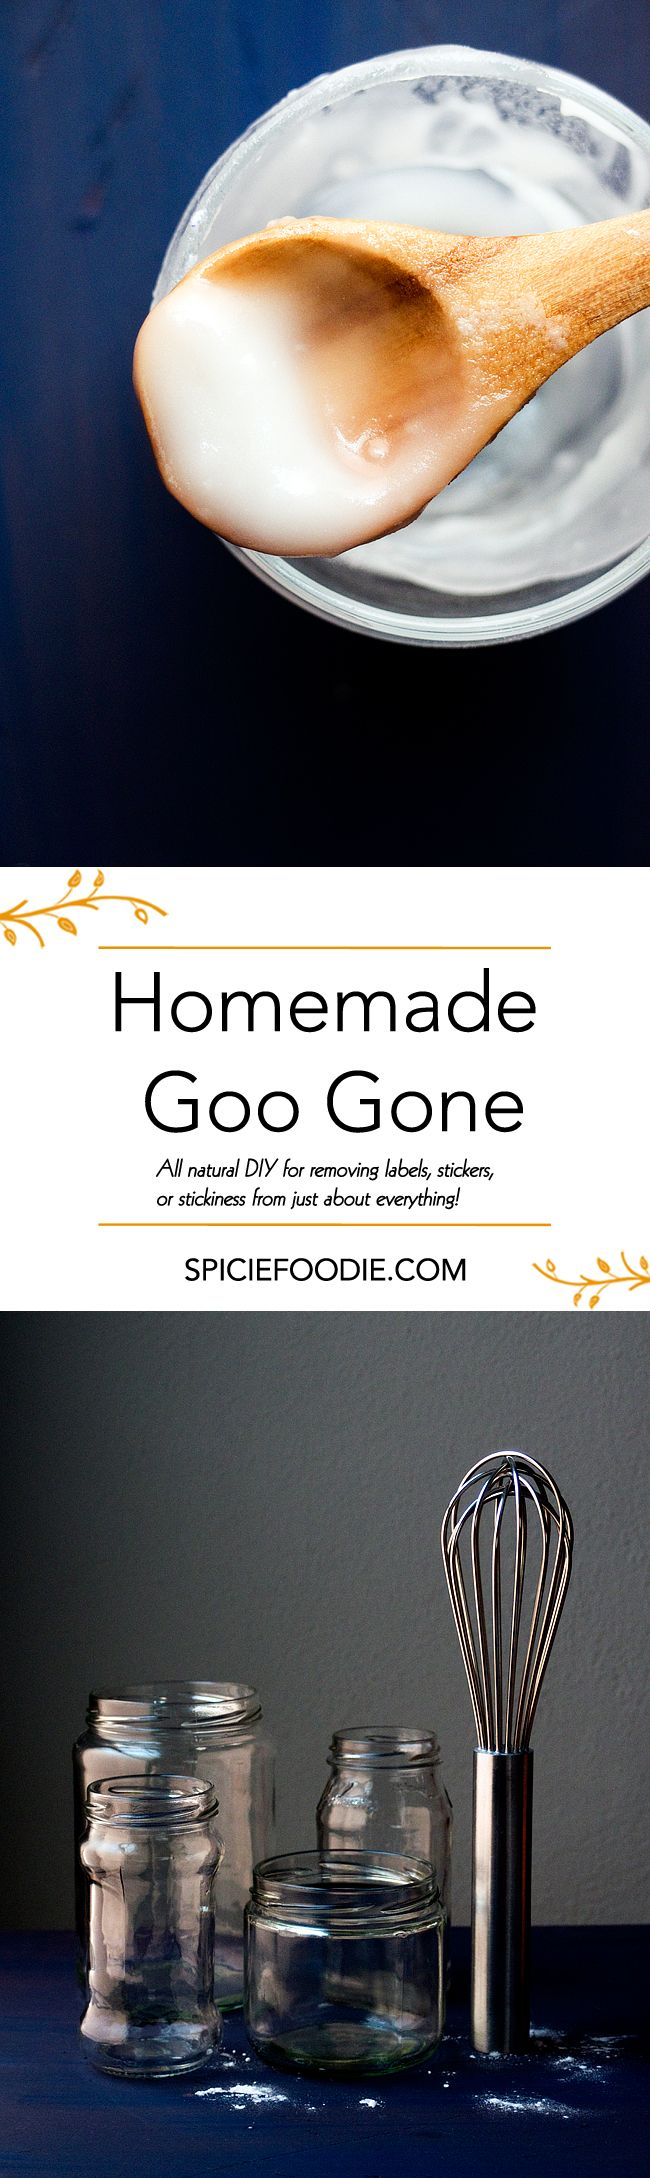 Homemade Goo Gone | All #natural DIY for removing labels, stickers, or stickiness from just about everything!